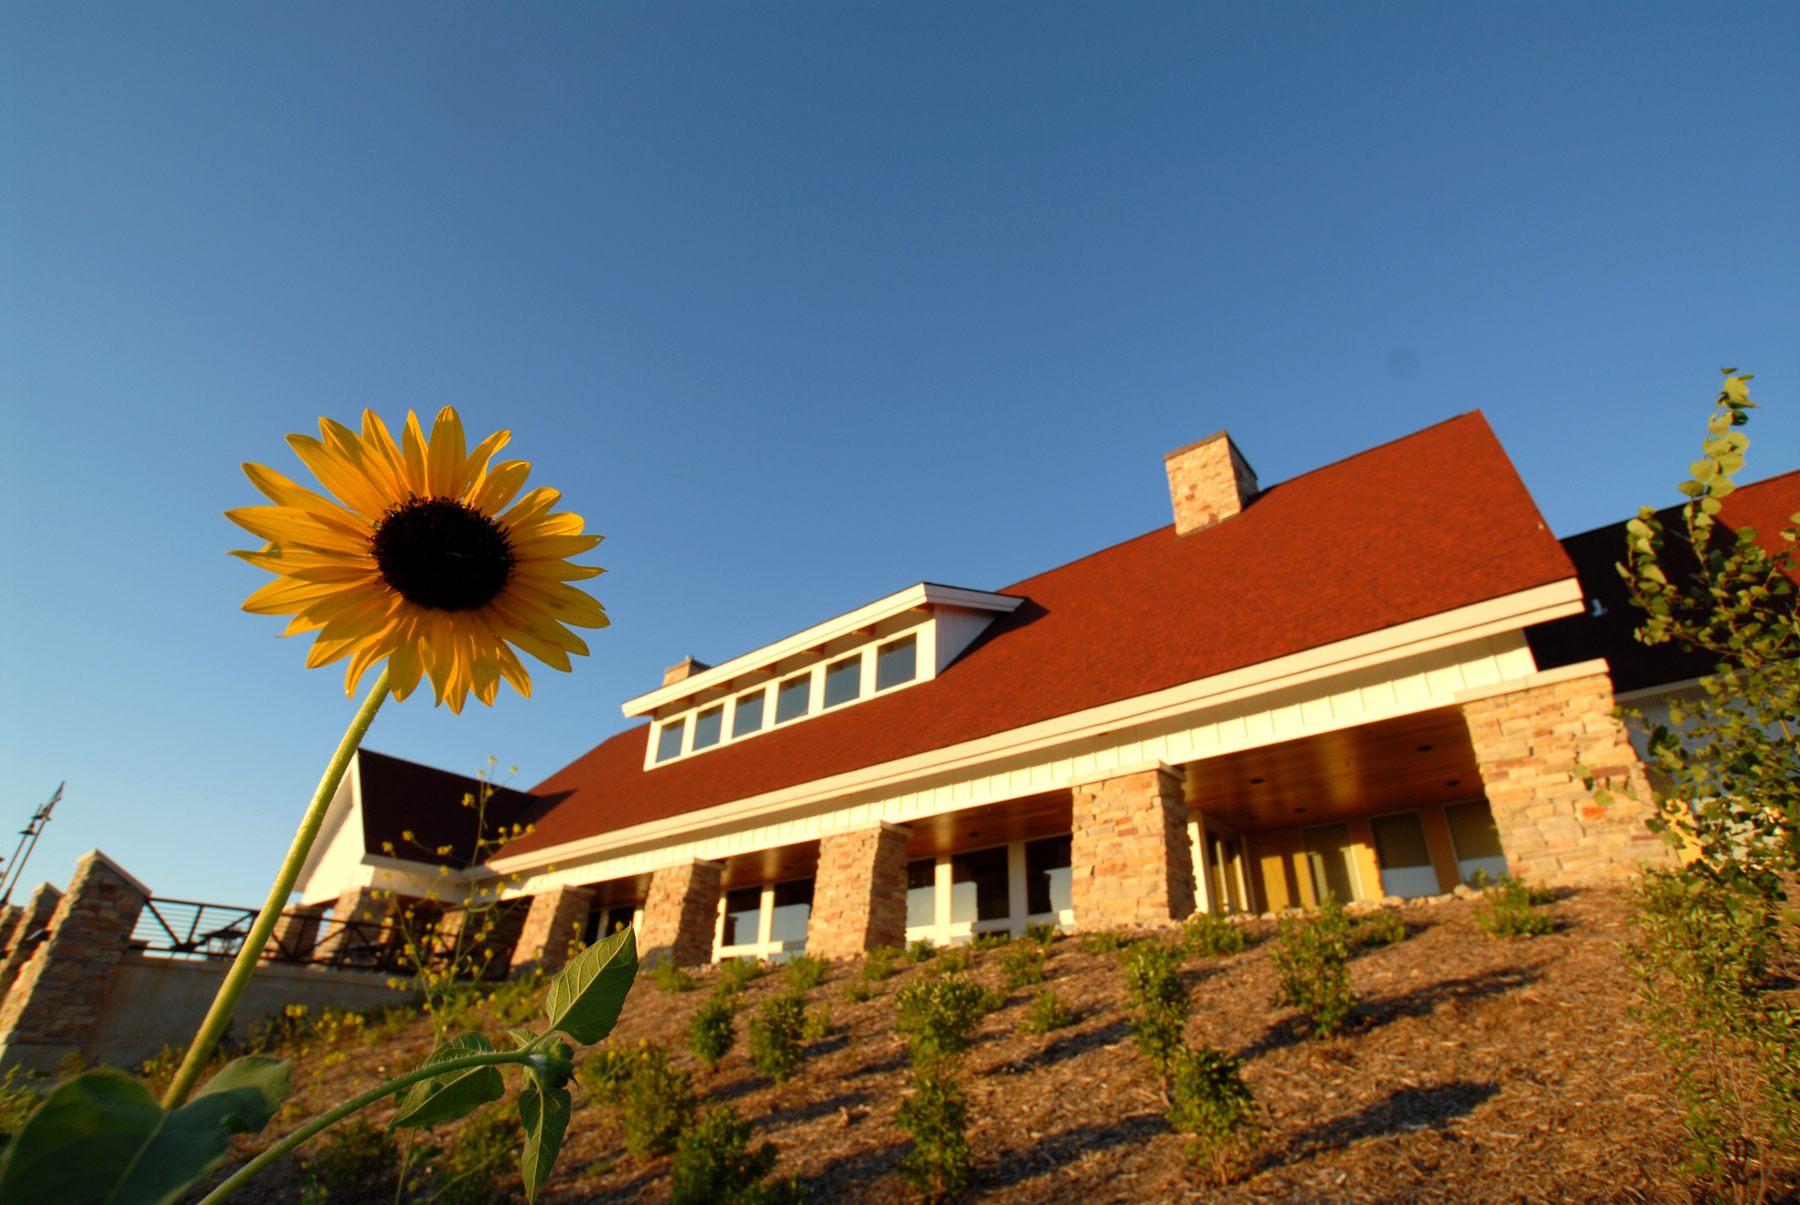 Sunflower in front of Elm Creek Chalet